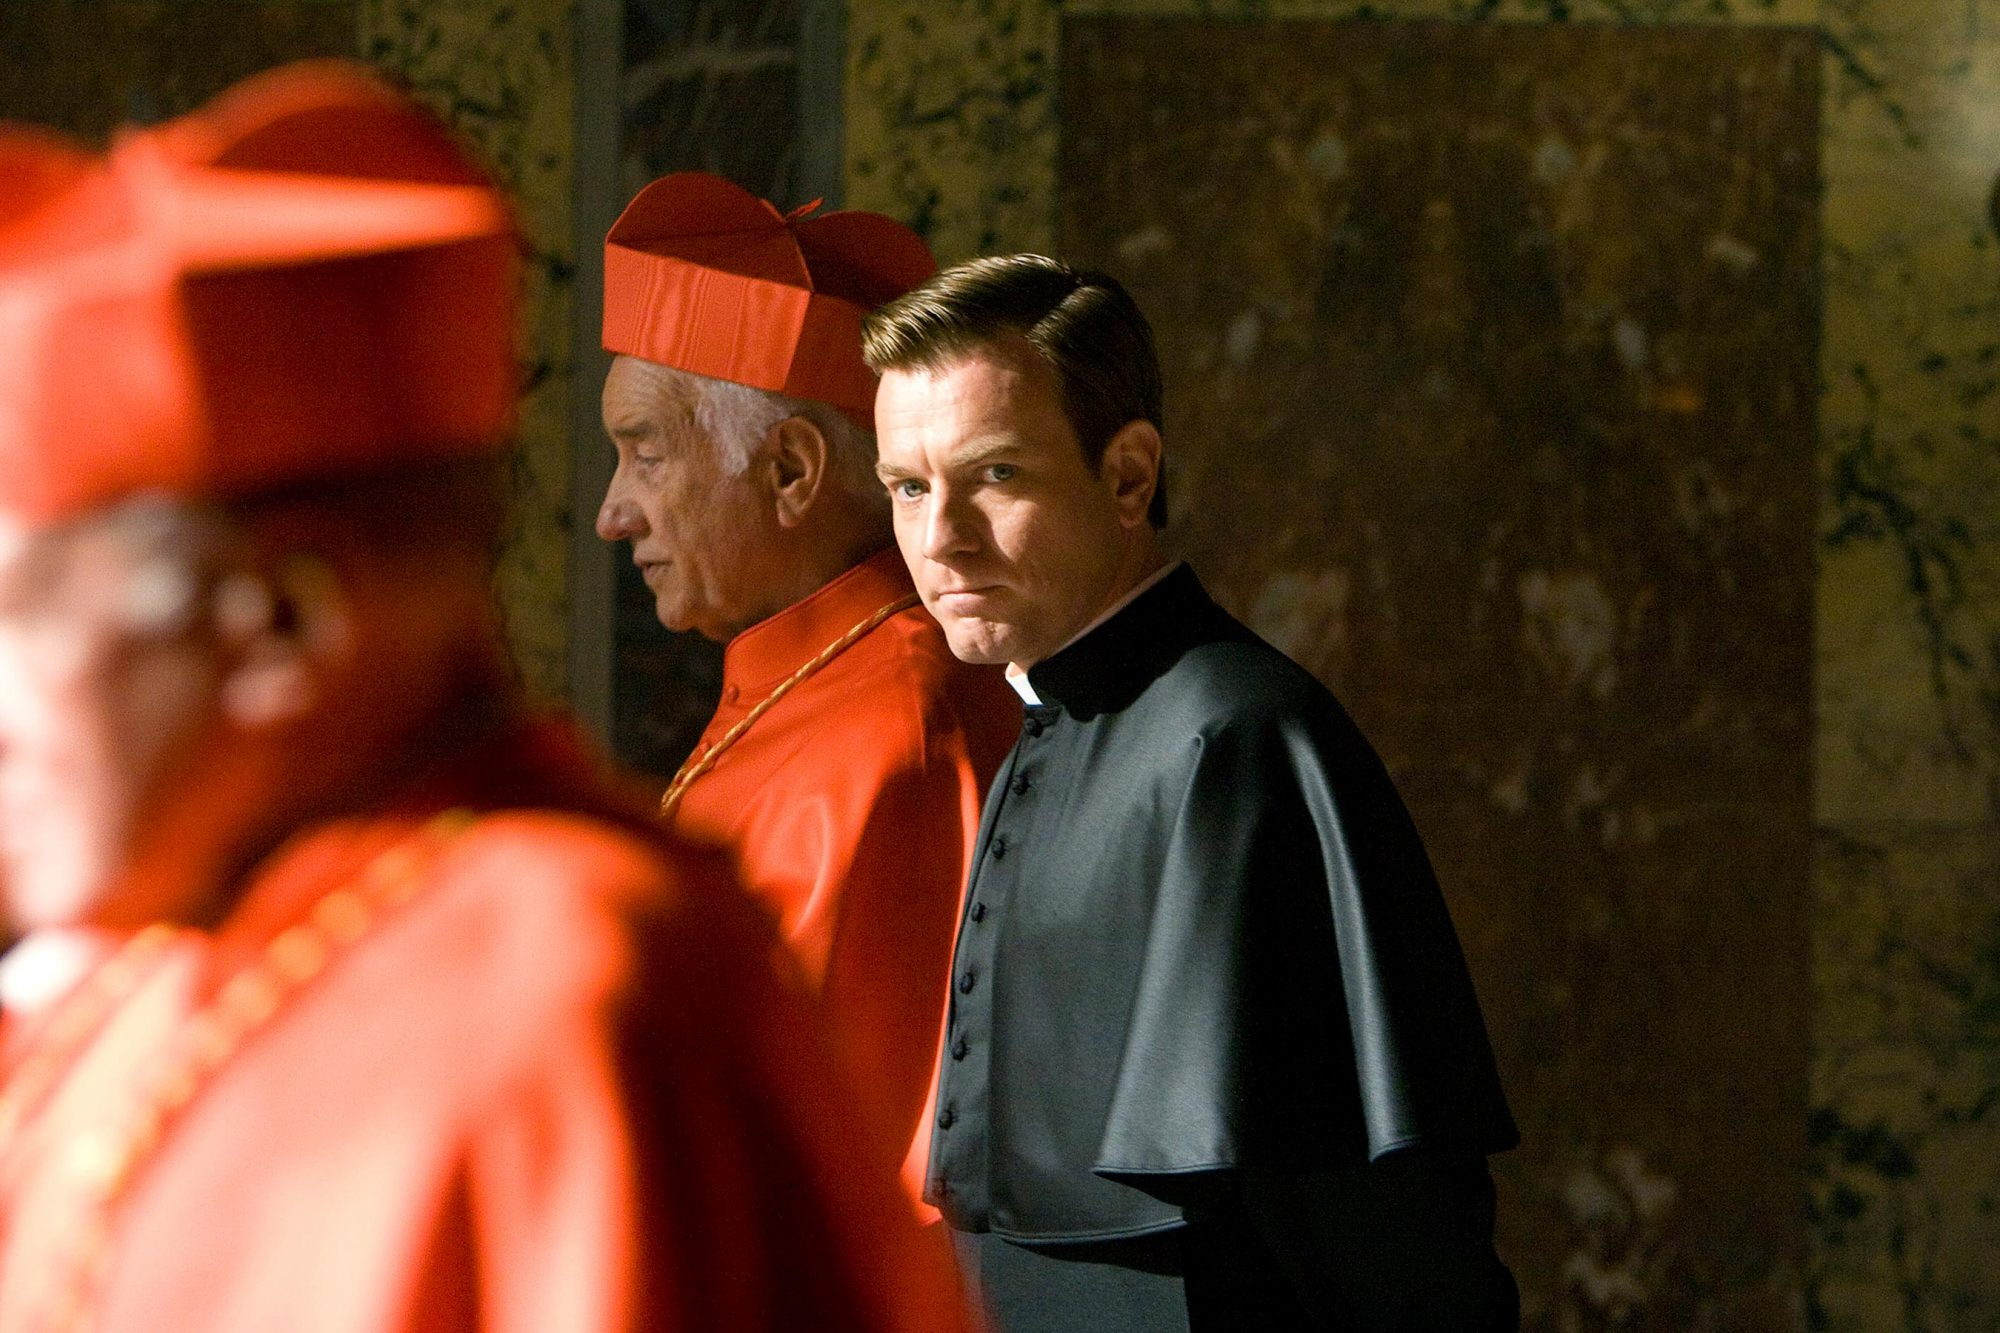 Father Patrick McKenna (Ewan McGregor) in Angels and Demons